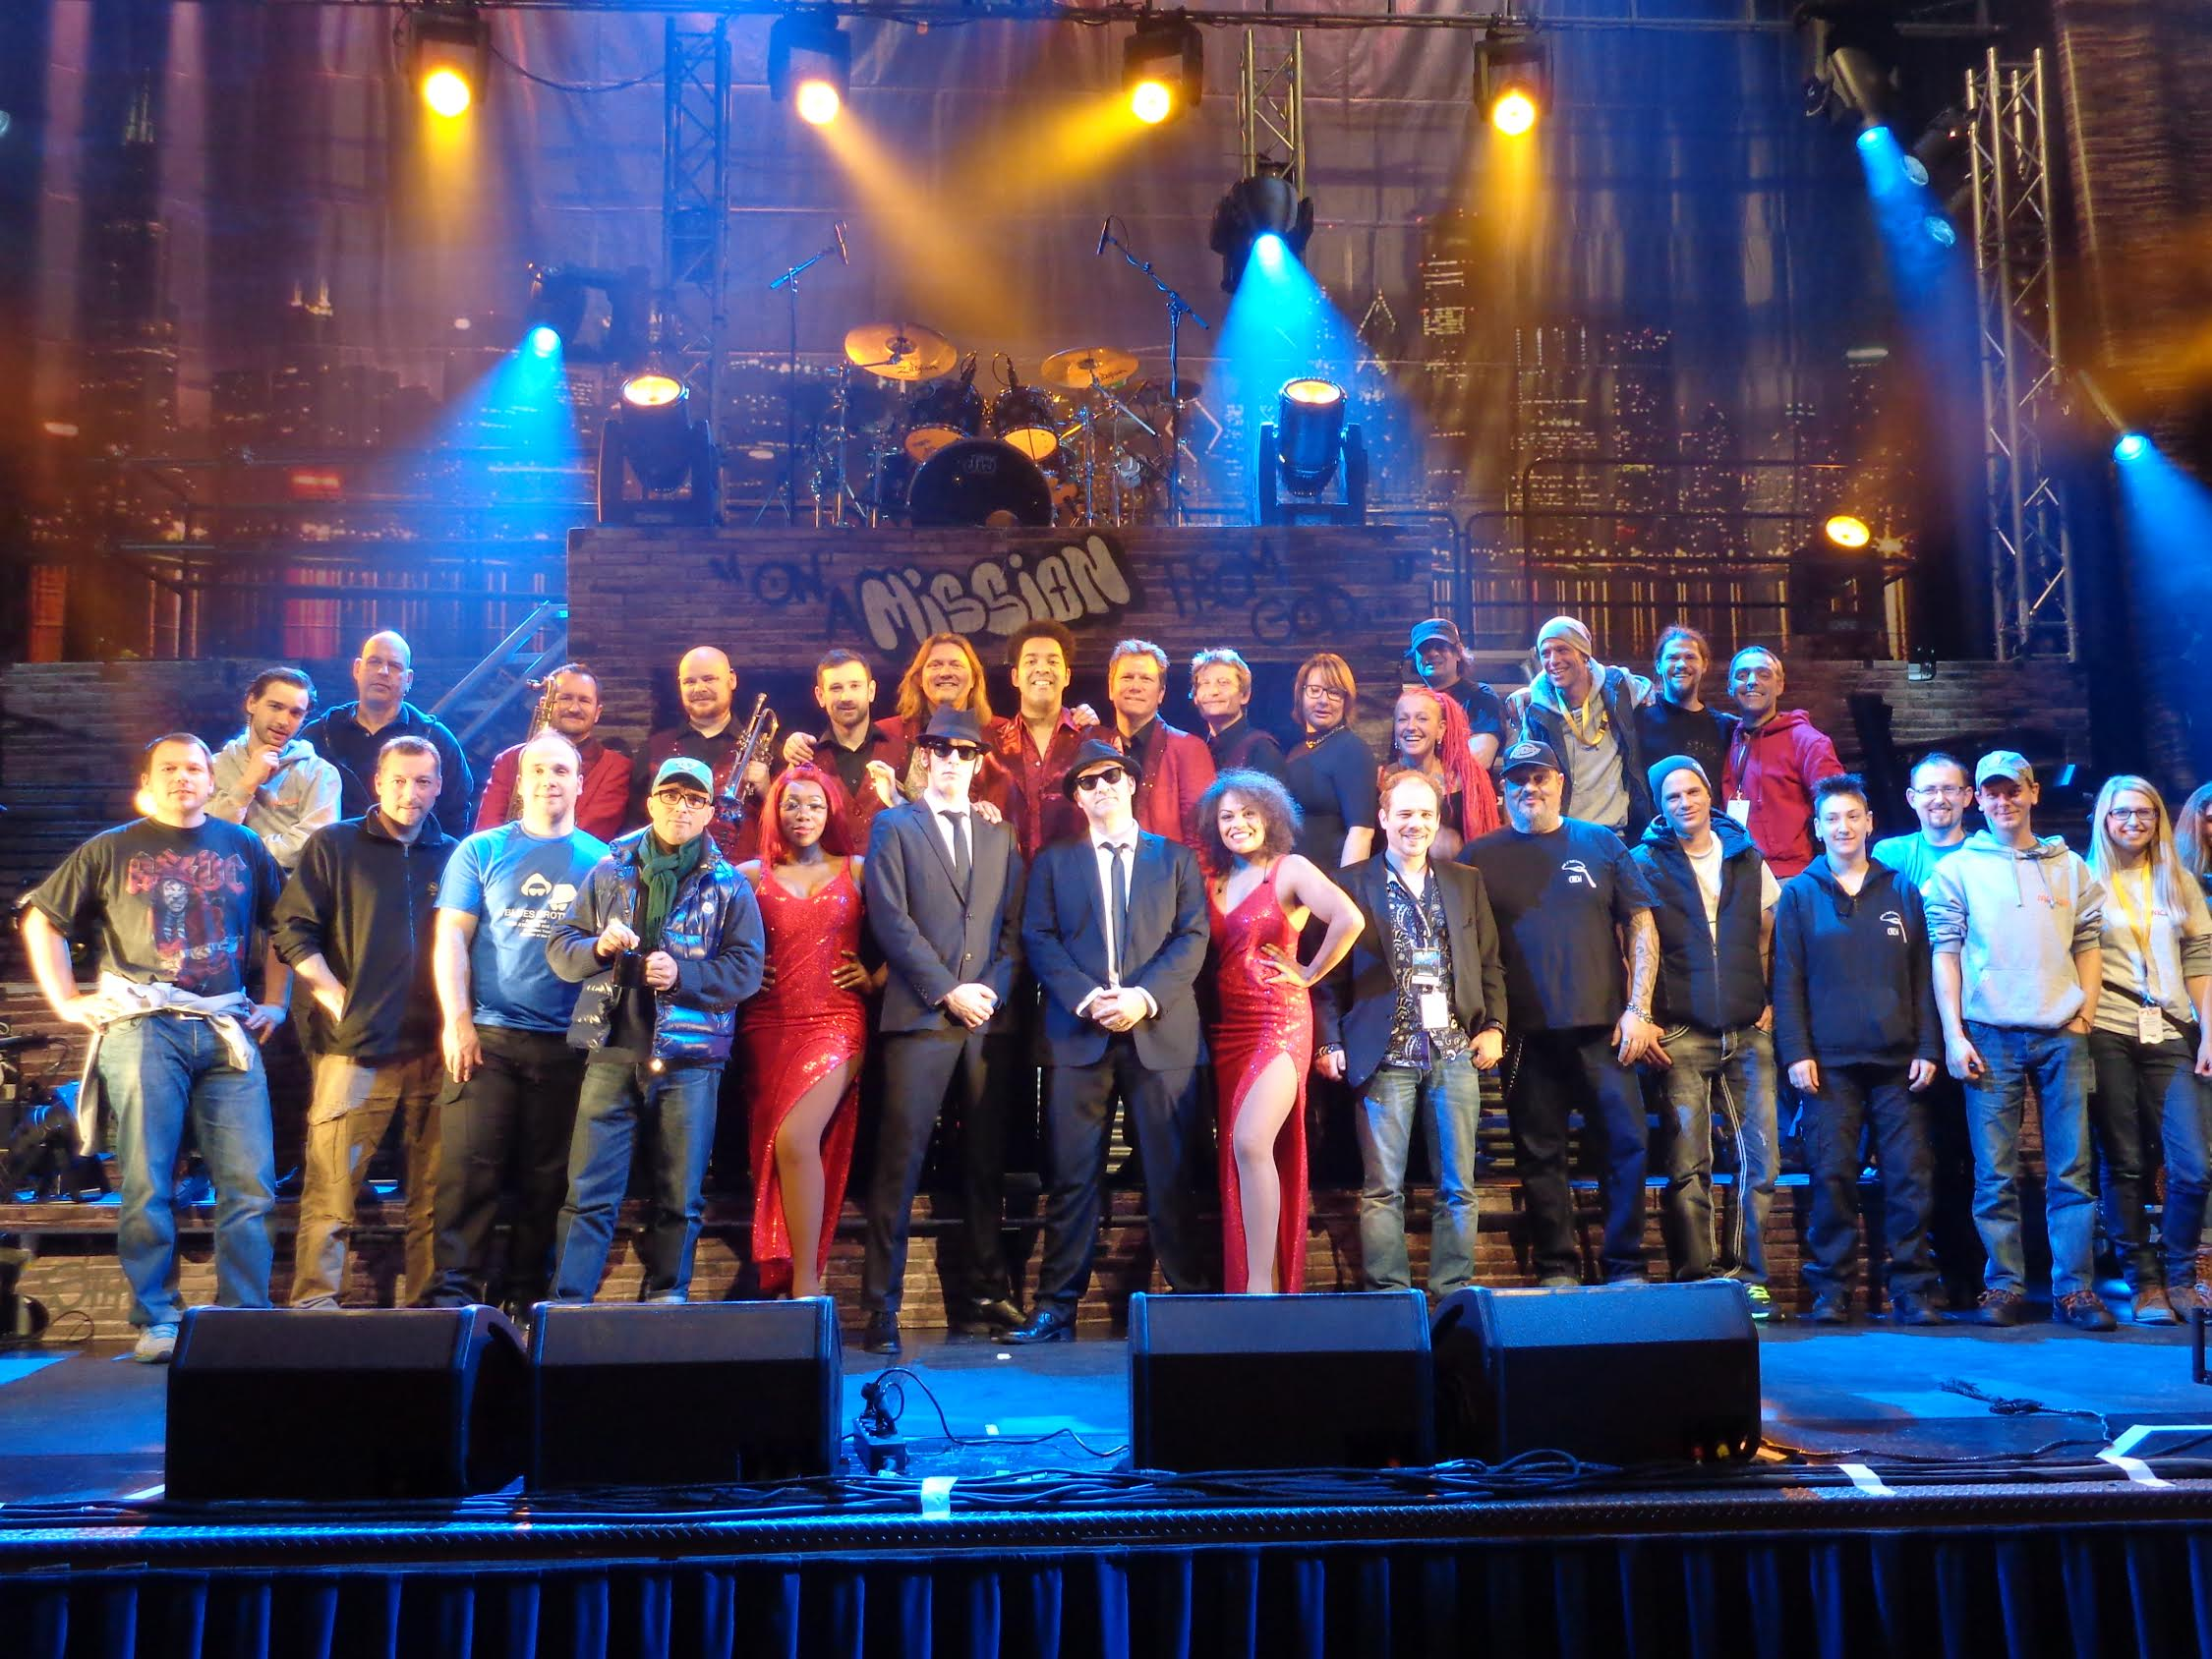 Blues Brothers Approved Tour 2015 Cast and Crew pictured in Zurich